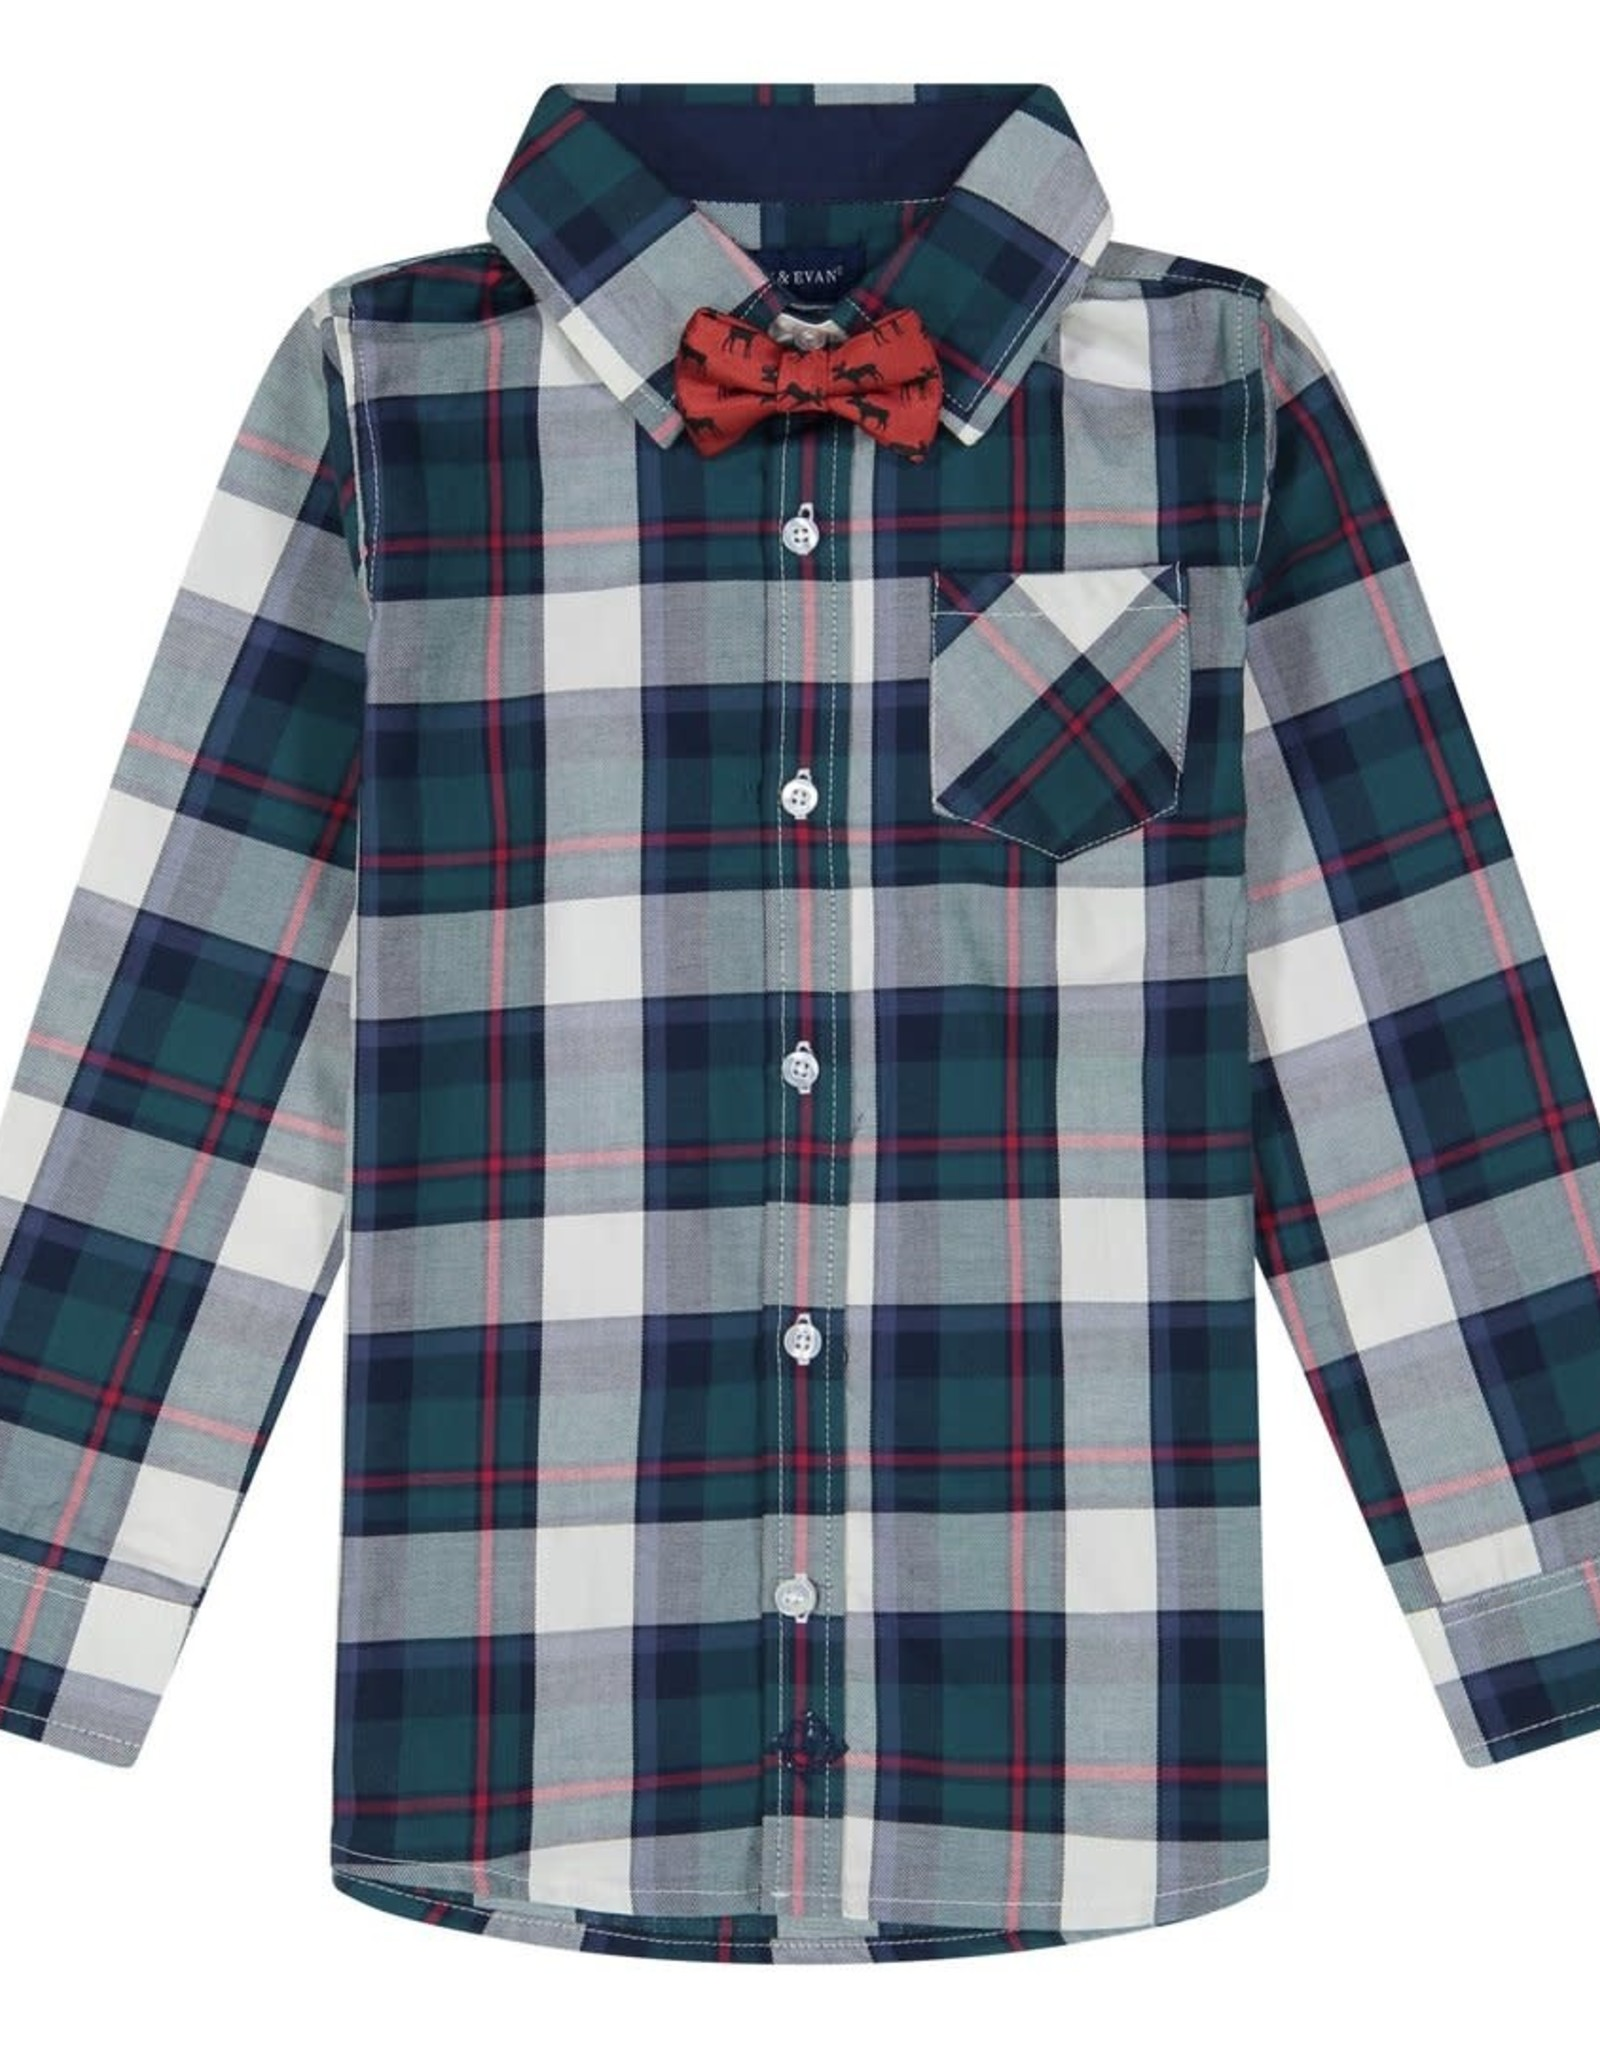 Andy & Evan Button Down Shirt with Bowtie